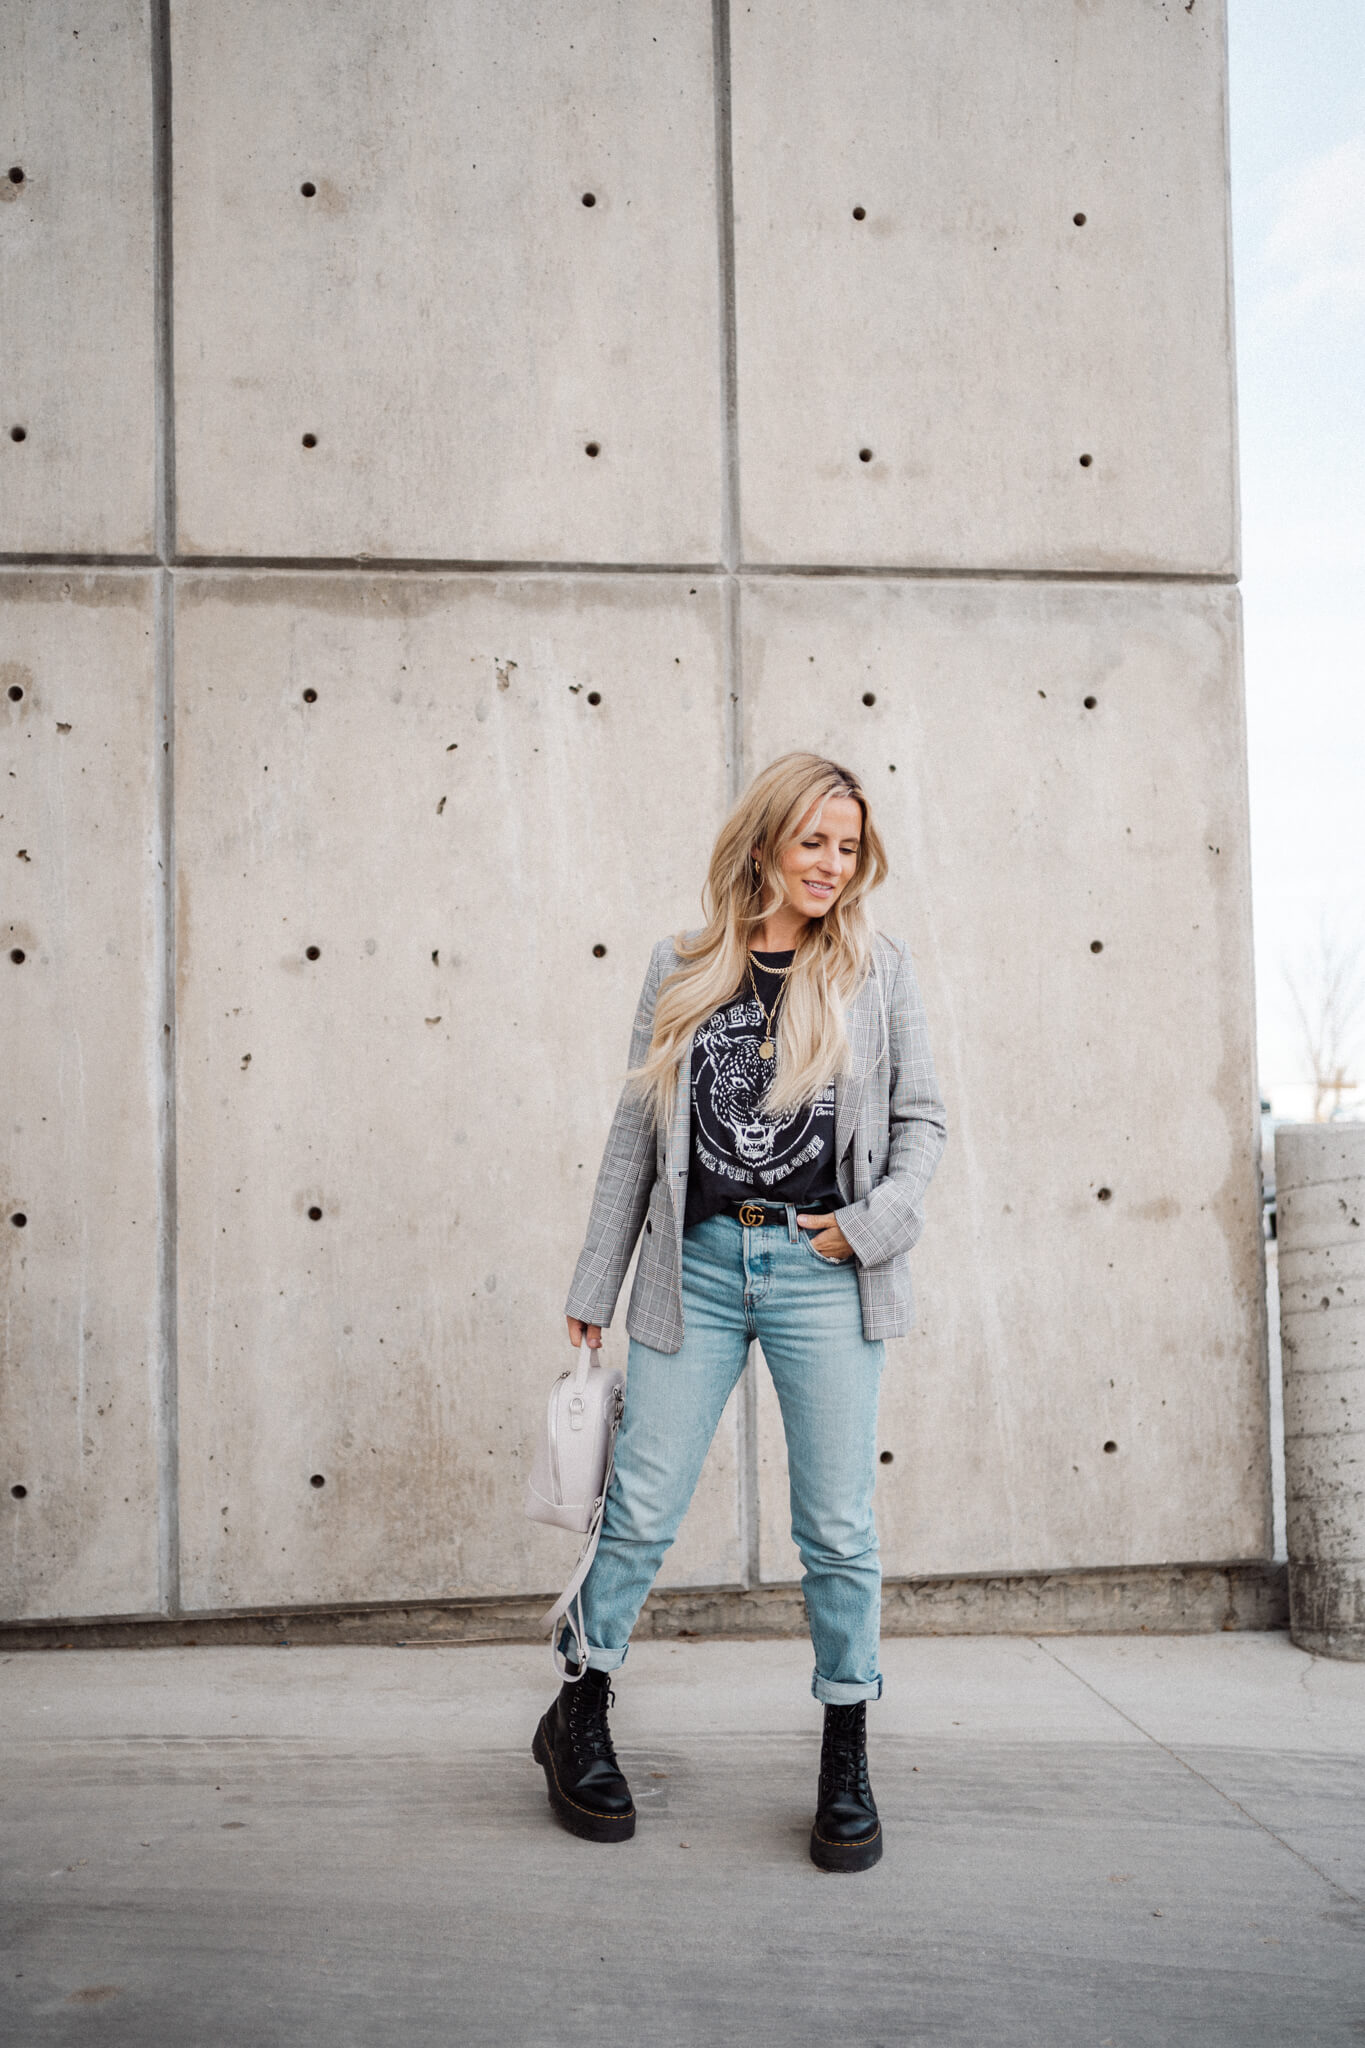 Influencer Kelsi Kendel provides her top 4 fall fashion items